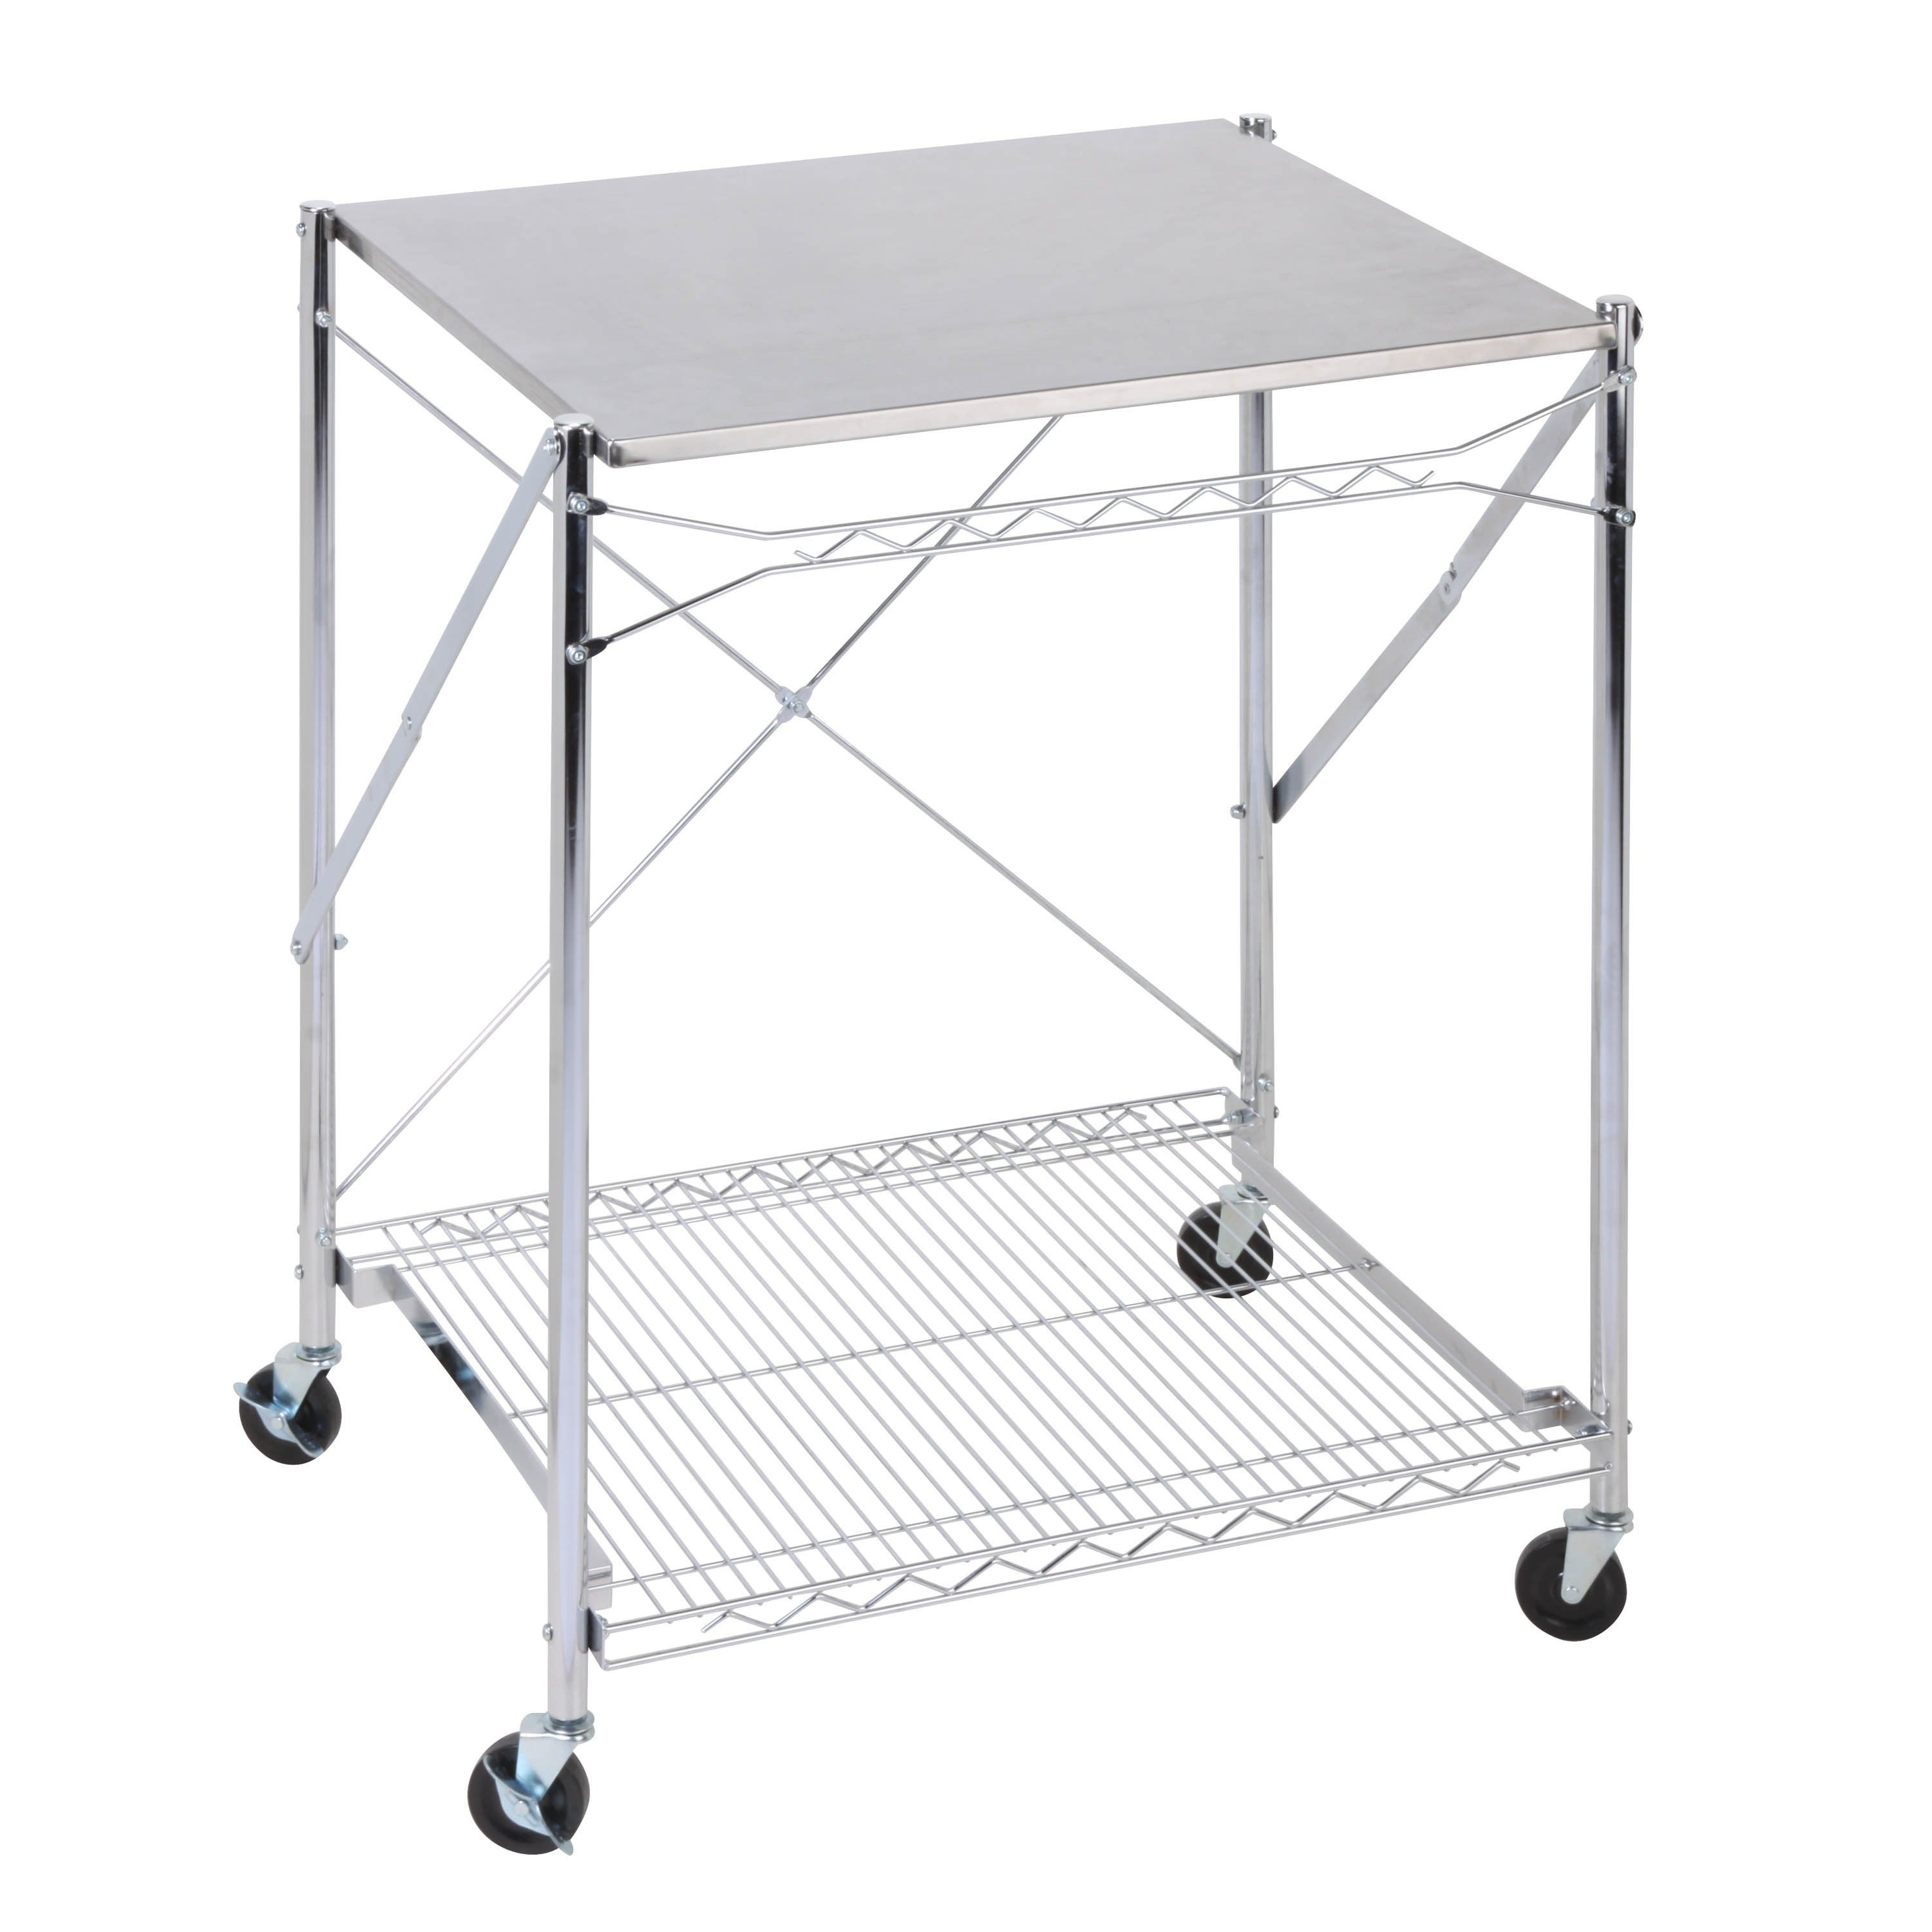 Shop Honey Can Do Folding Urban Stainless Steel Work Table   Free Shipping  Today   Overstock.com   15369068